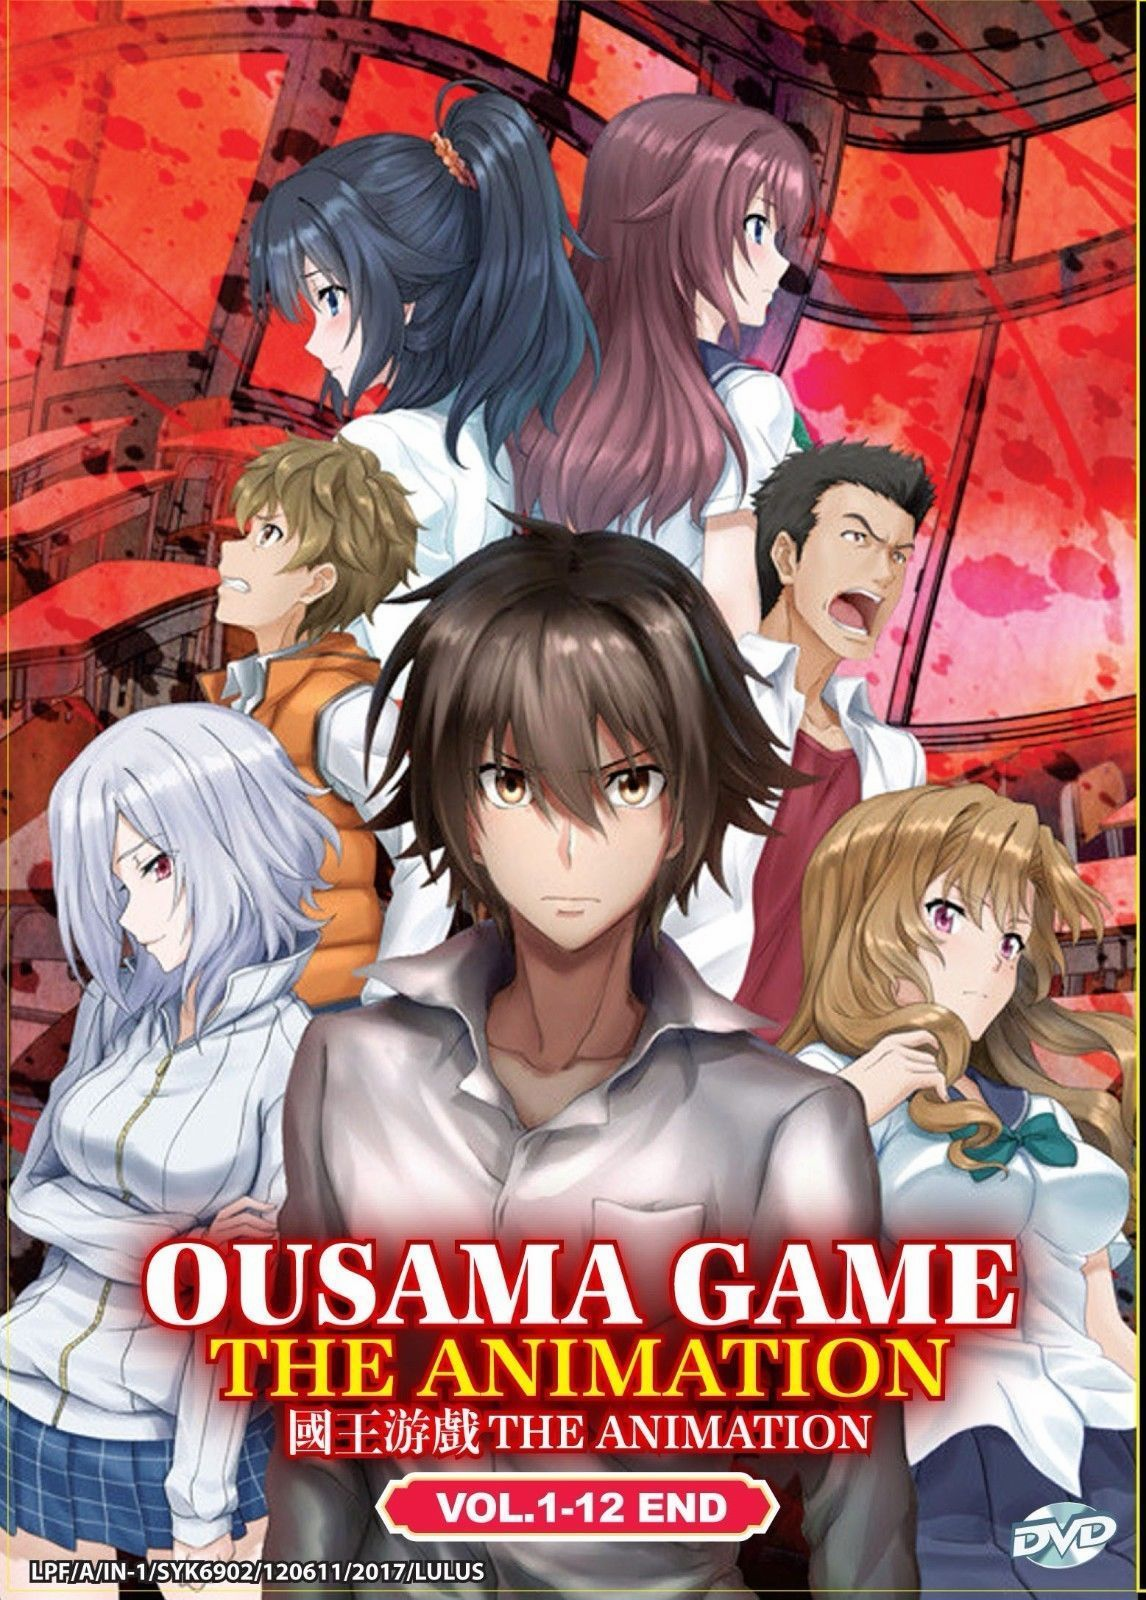 Ousama Game / King's Game ( Vol. 1-12 End ) ENGLISH DUBBED